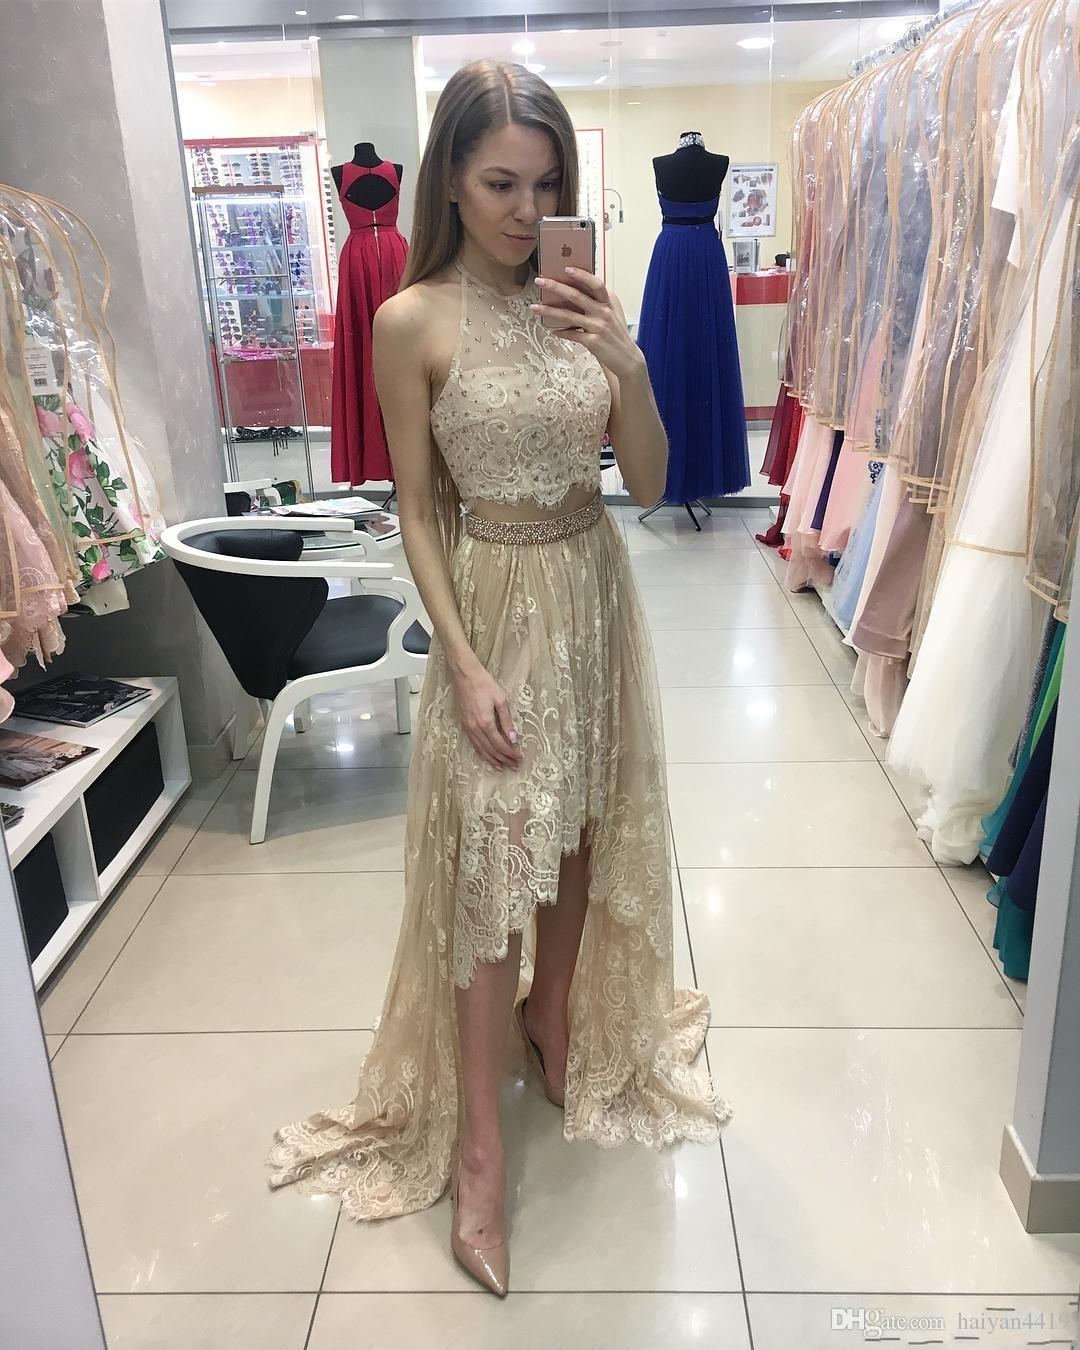 0d81fb0fb7 2018 Sexy Two Pieces Prom Dresses Halter Neck Lace Applique Beaded Sequins  Peplum Illusion Sleeveless High Low Arabic Party Evening Gowns Chiffon Prom  Dress ...